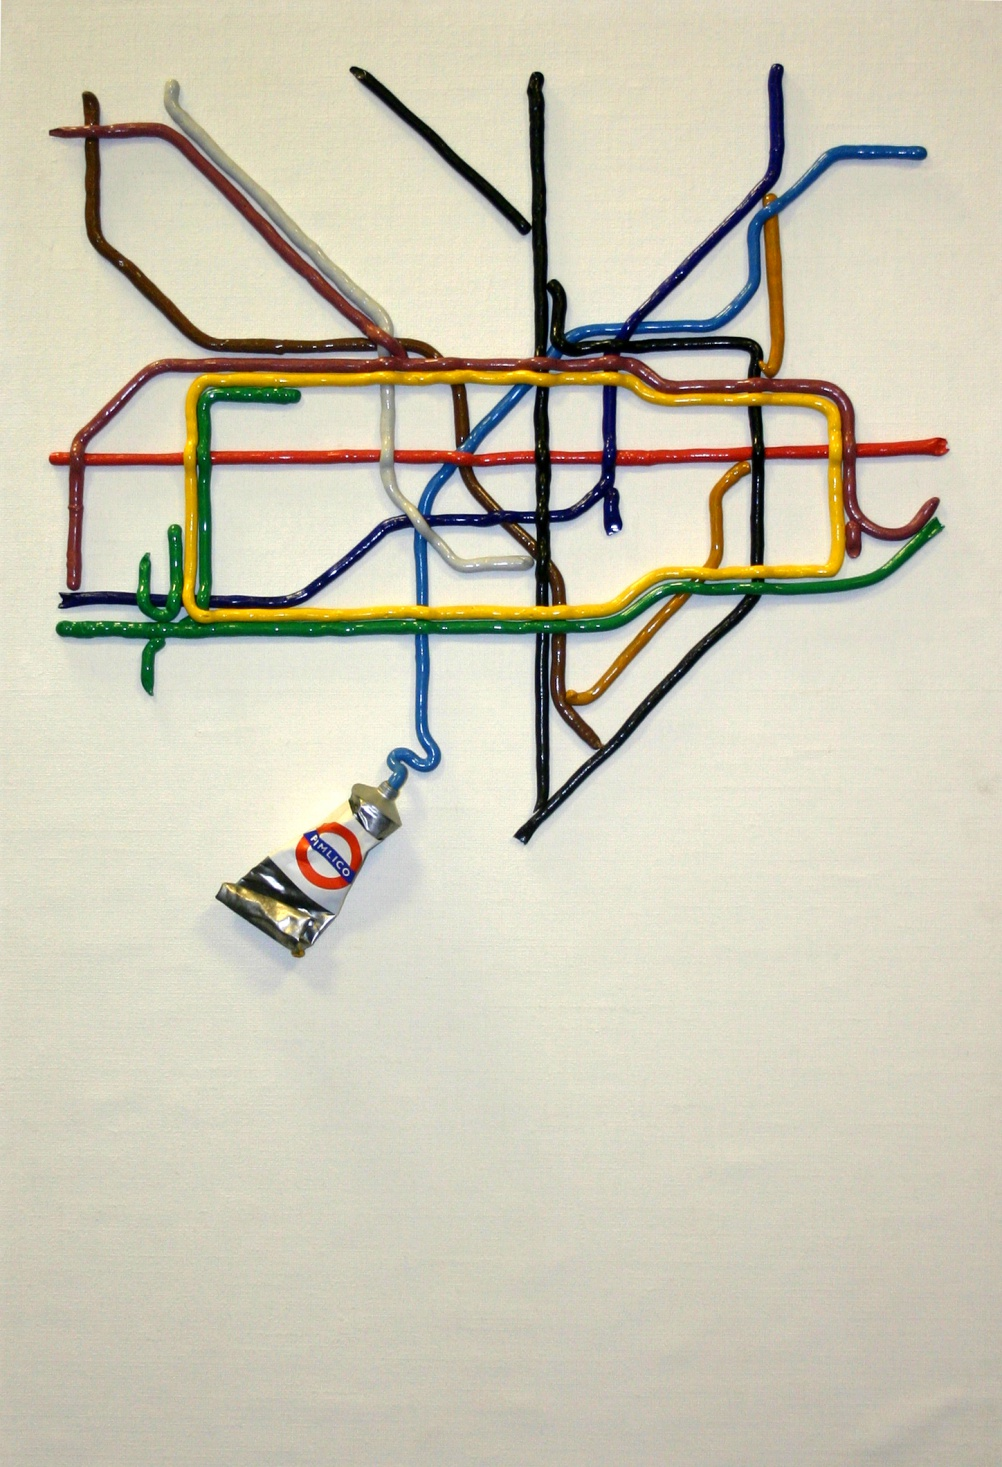 The Tate Gallery by Tube, by David Booth, 1986